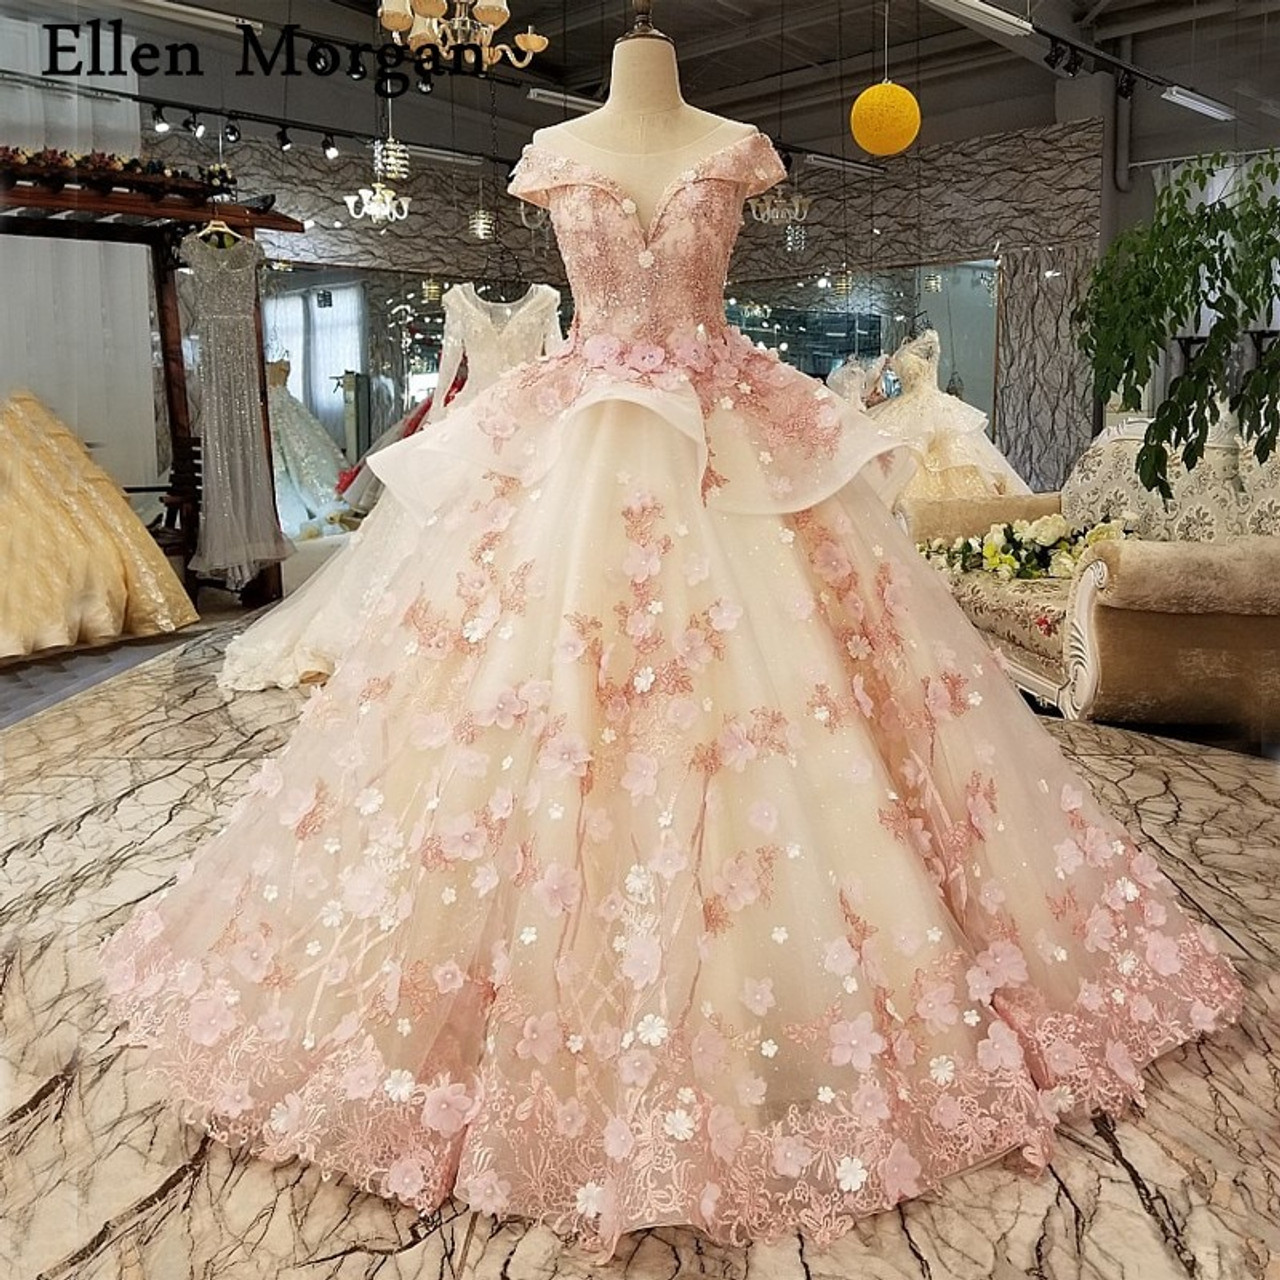 6843c74e7 Elegant Pink Lace Princess Wedding Dresses 2018 African Black Girls Flowers  Lace up Sheer Neck Puffy Ball Gowns Bridal Gowns - OnshopDeals.Com